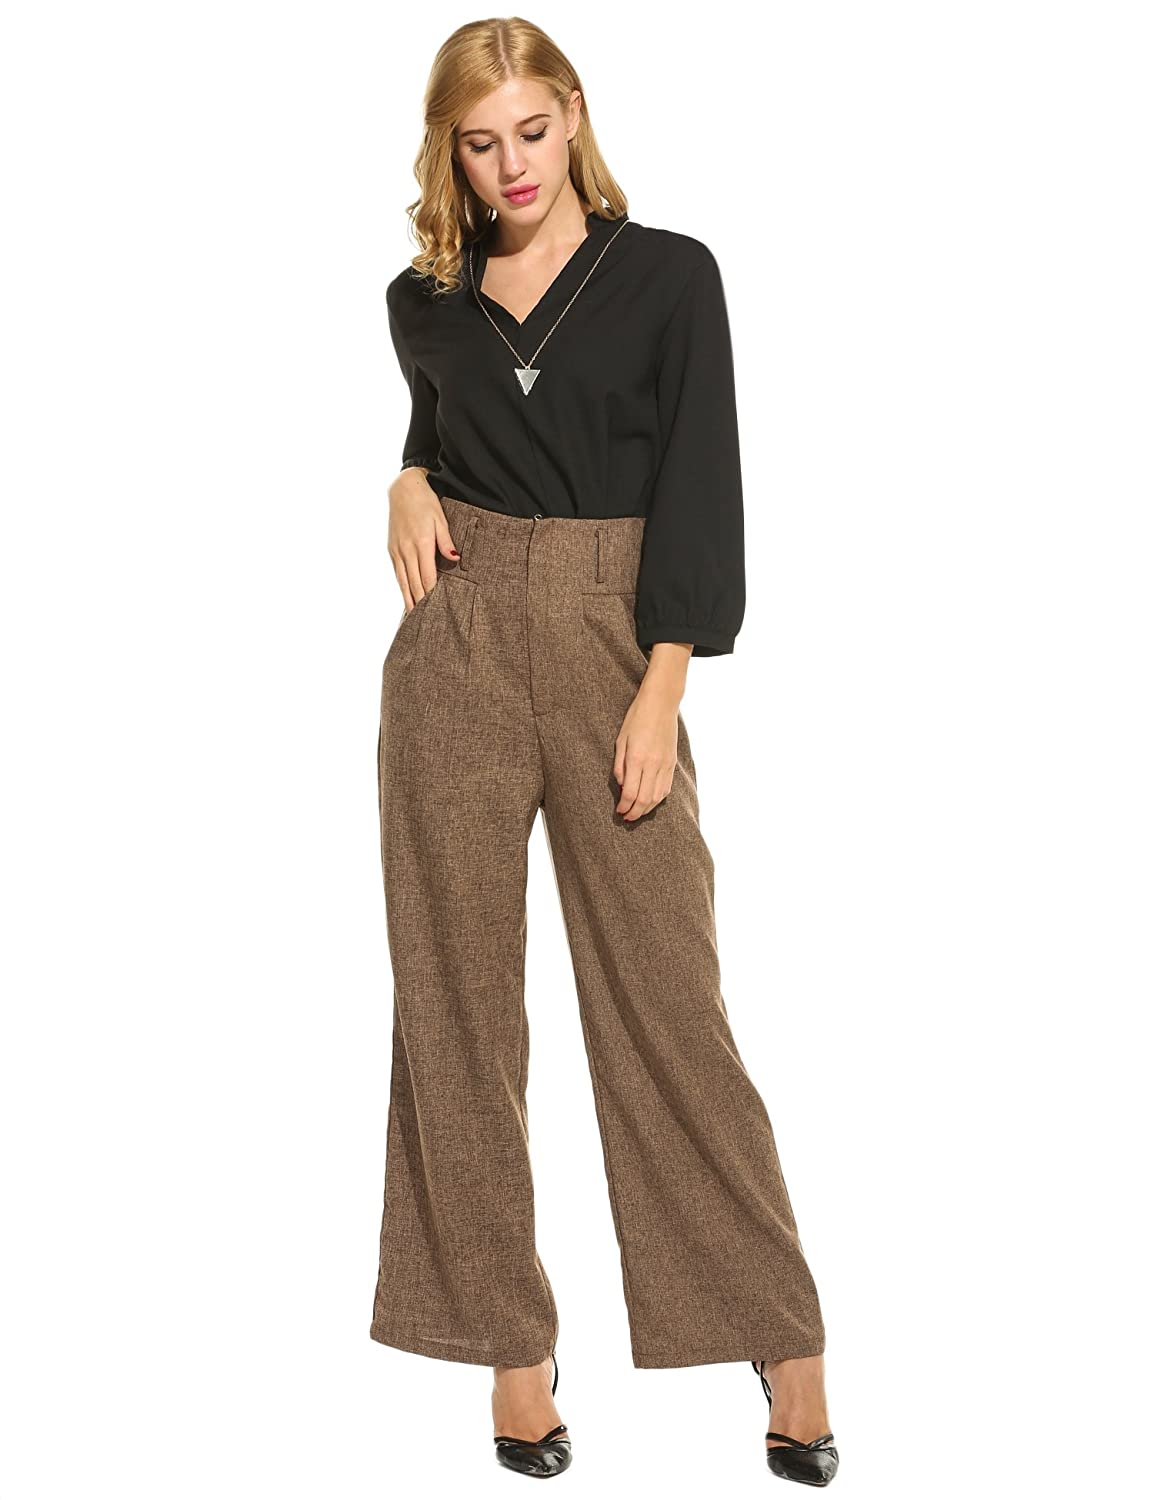 1940s Swing Pants & Sailor Trousers- Wide Leg, High Waist Zeagoo Women Casual Superline Wide Flare Leg High Waist Zipper Solid Long Pants $25.99 AT vintagedancer.com